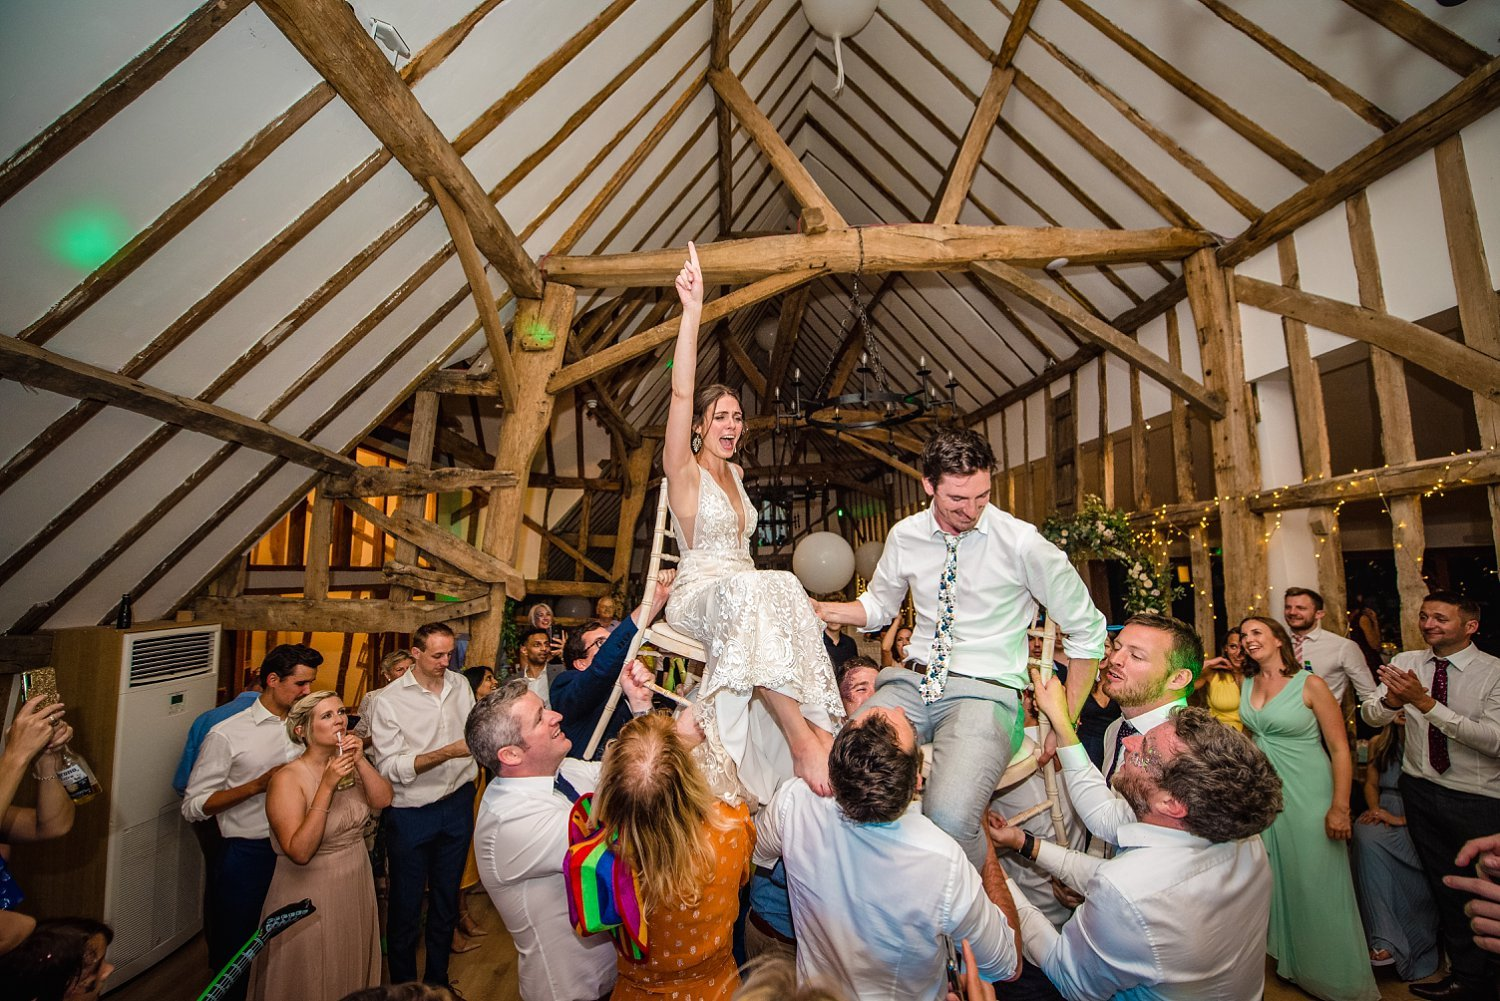 Colville Hall Weding Photographer - bride groom are picked up by wedding guests. they are high up in air on chair